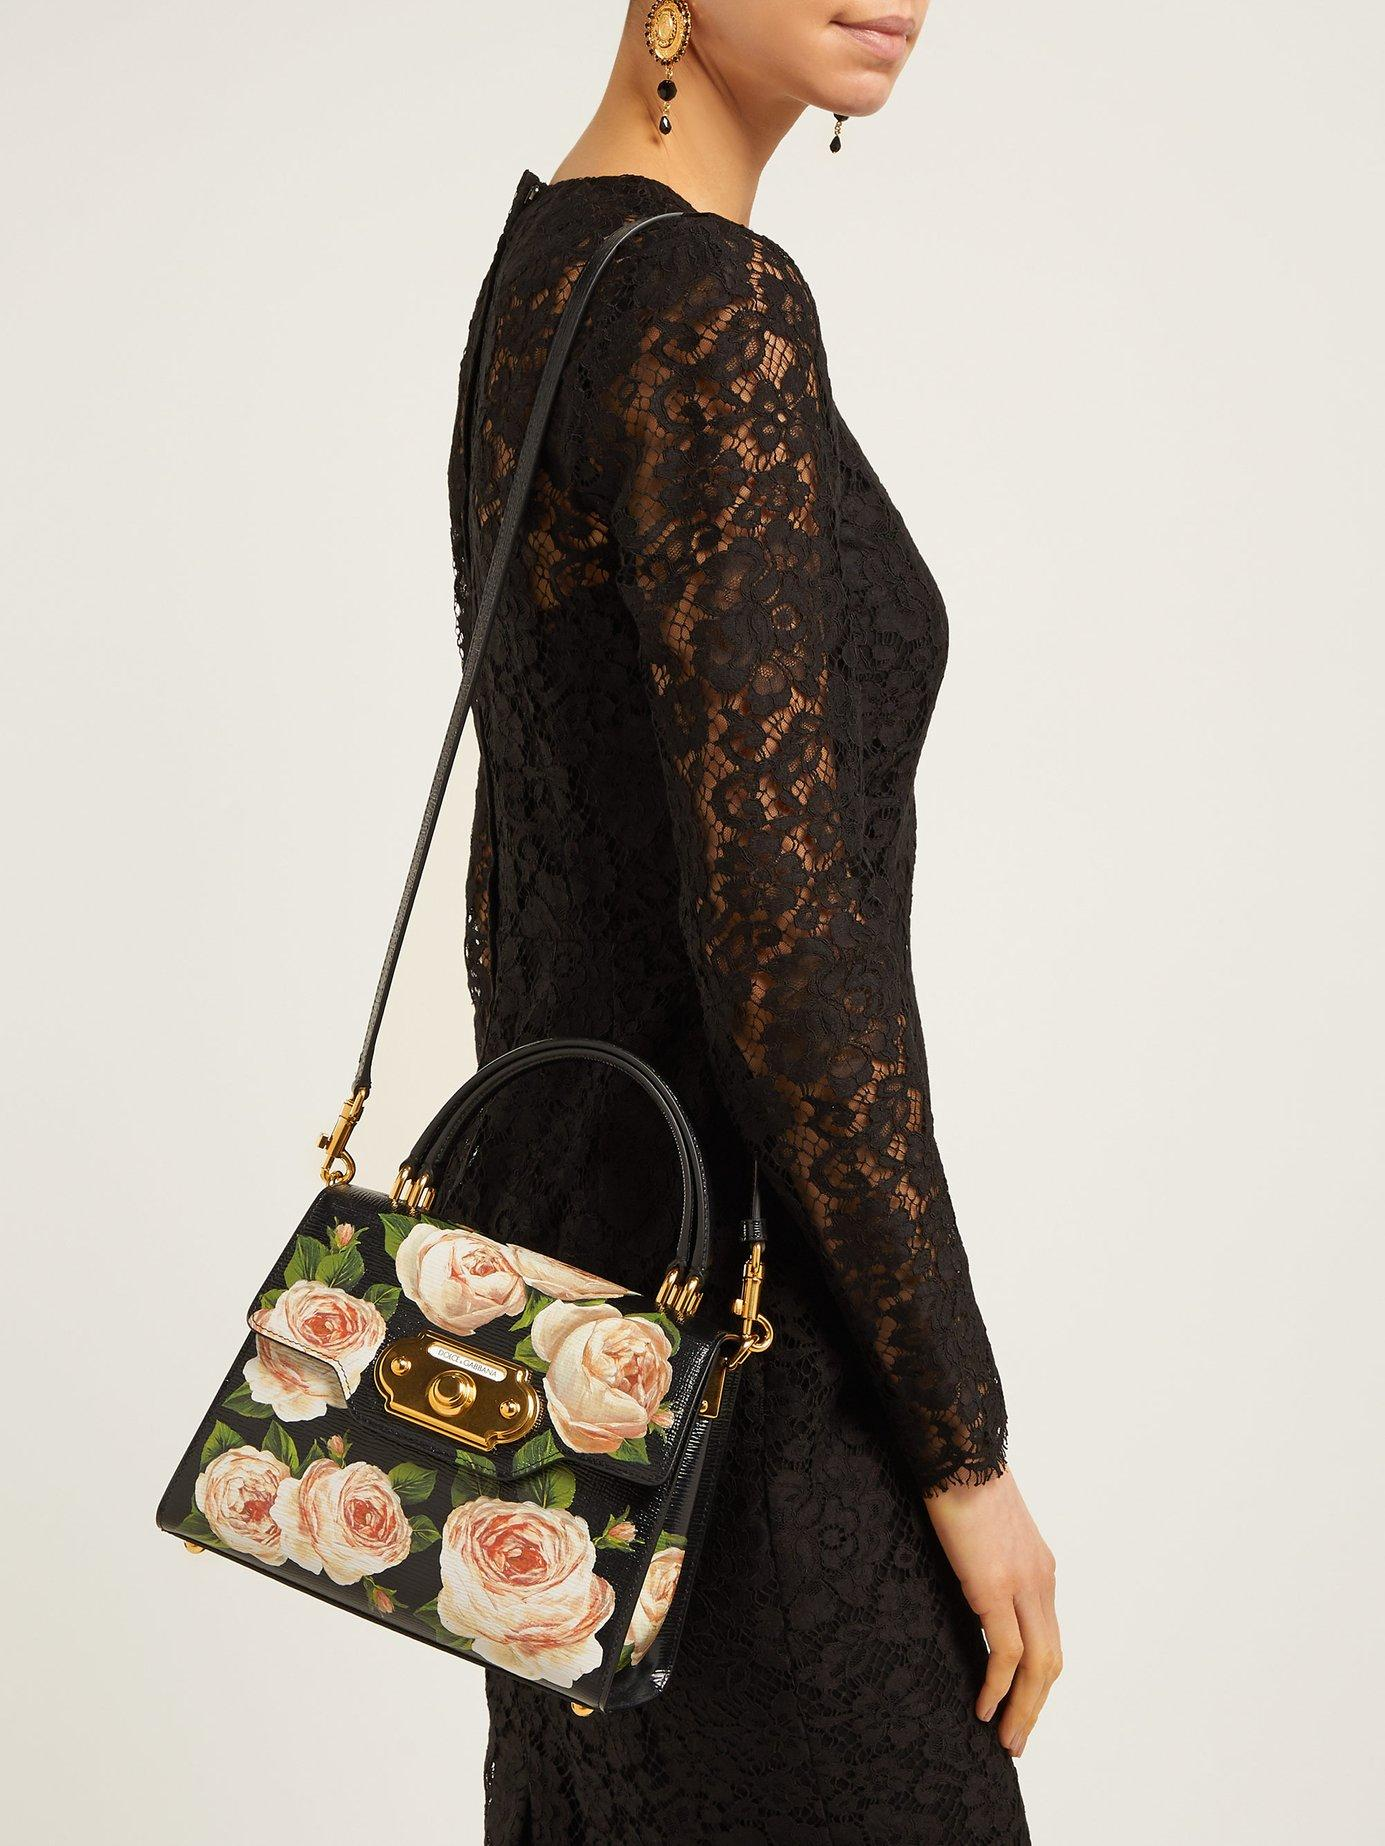 Dolce   Gabbana - Black Welcome Rose Printed Grained Leather Bag - Lyst.  View fullscreen 25f1c33bd55e4